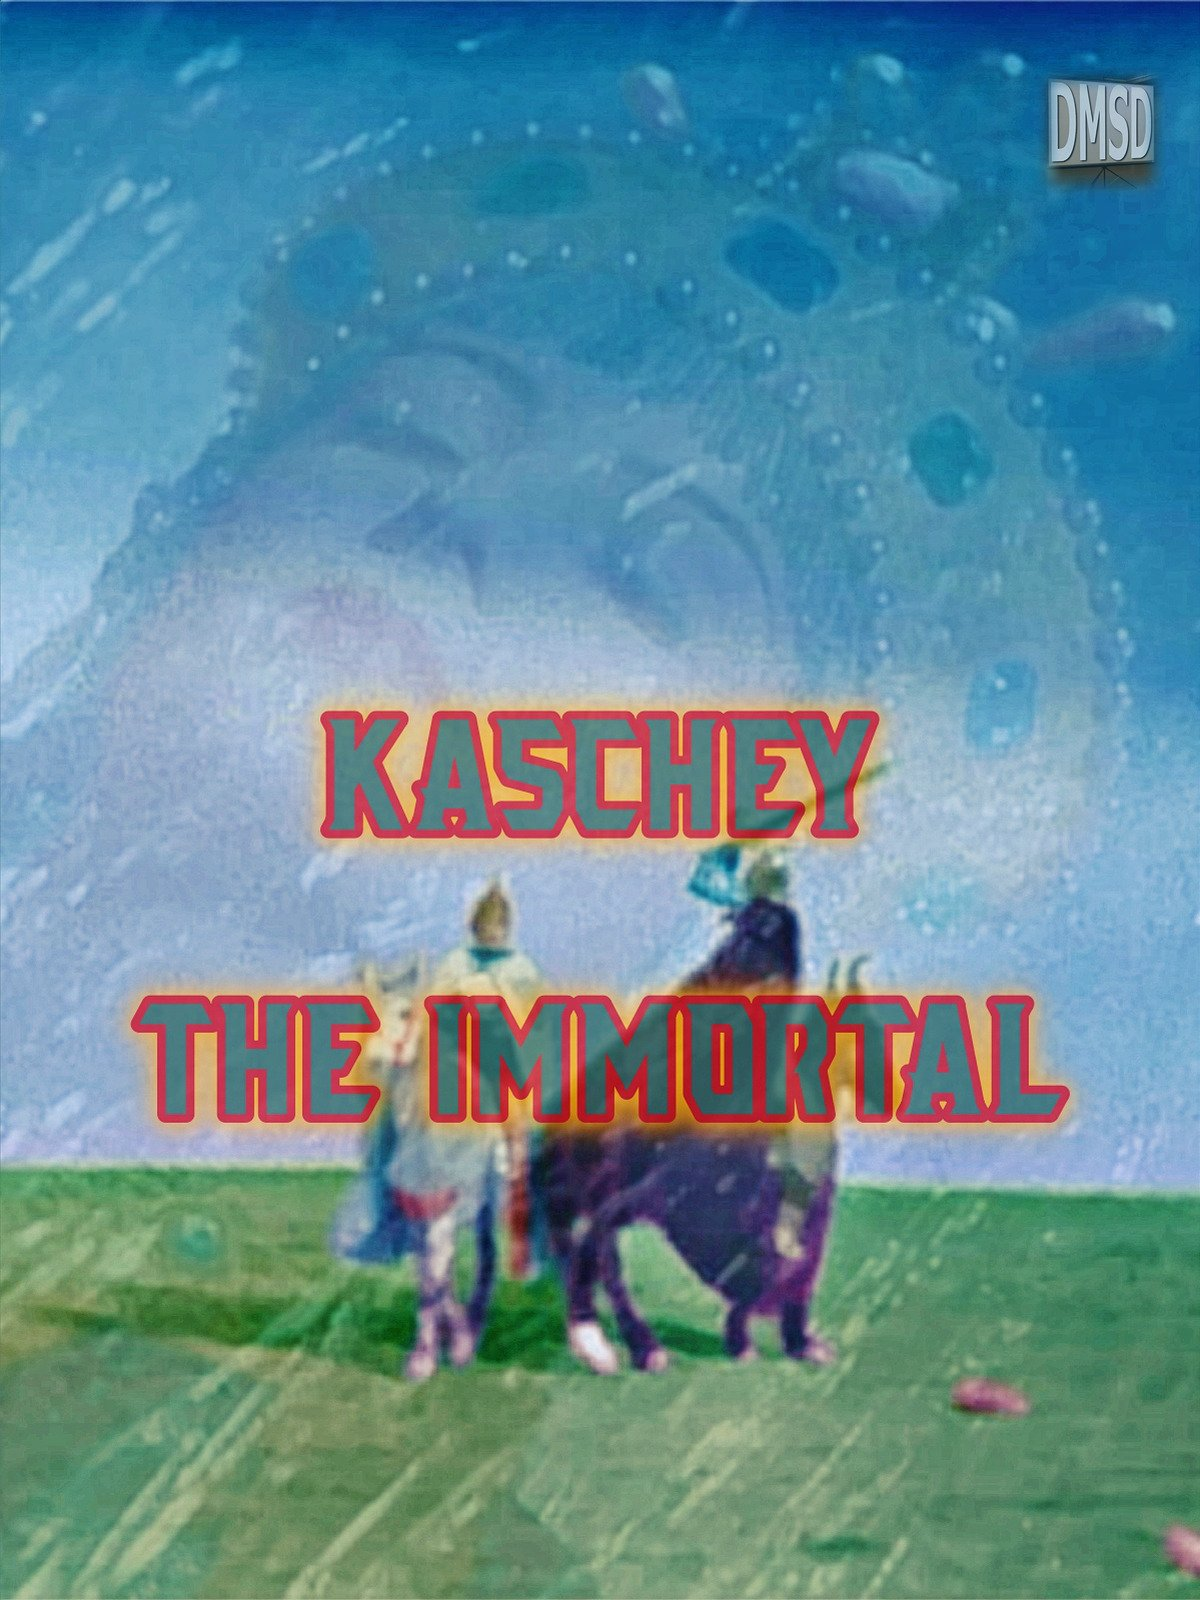 Kaschey the Immortal